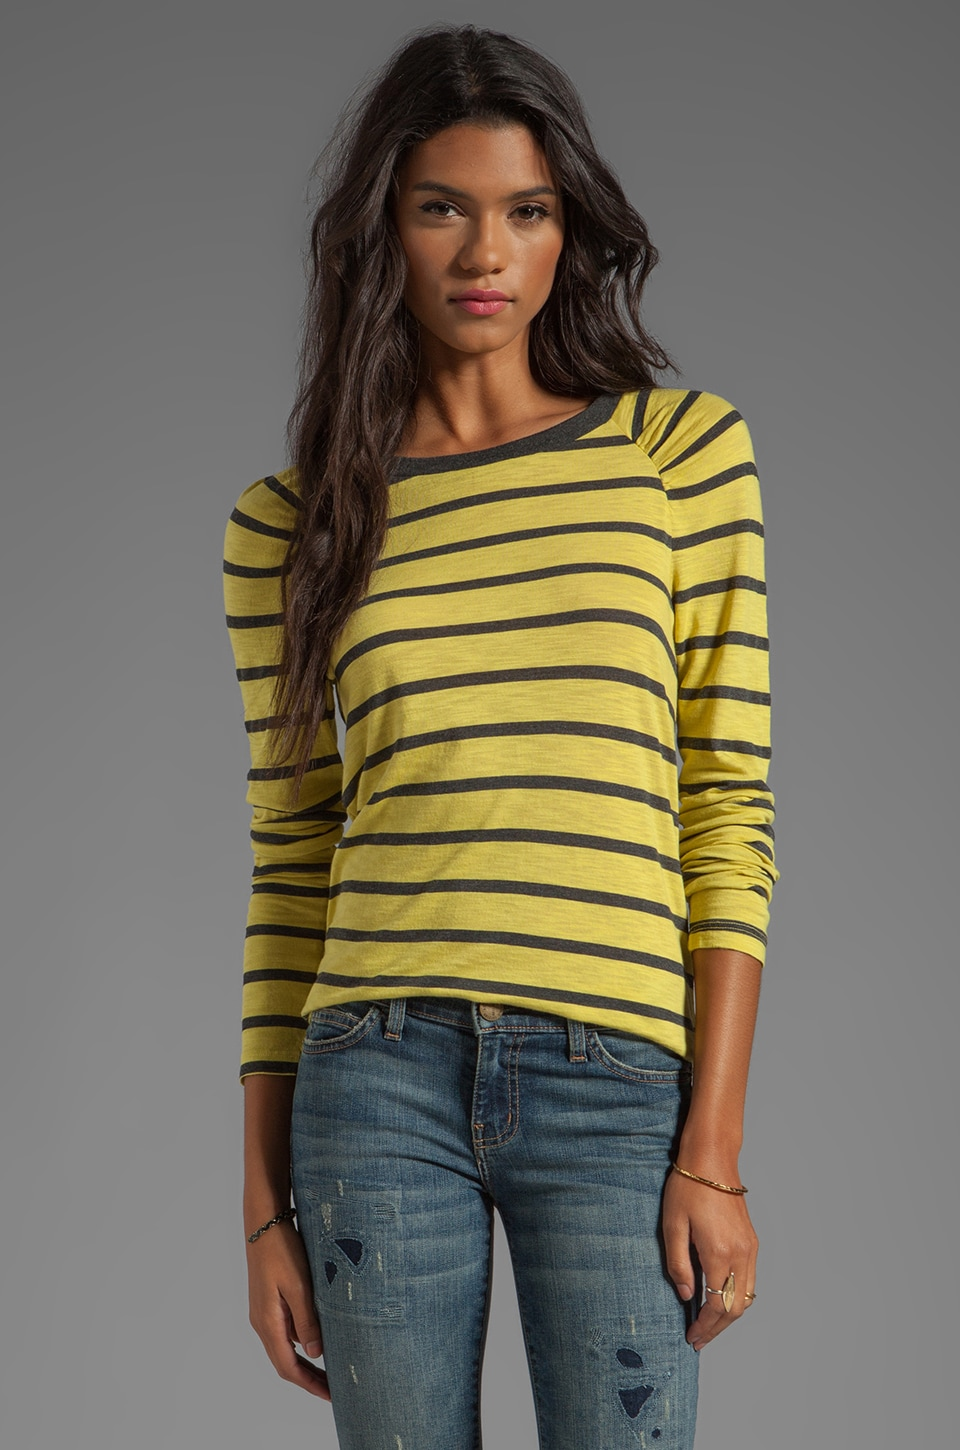 Velvet by Graham & Spencer Verna Charcoal Slub Stripe Long Sleeve in Sunbeam